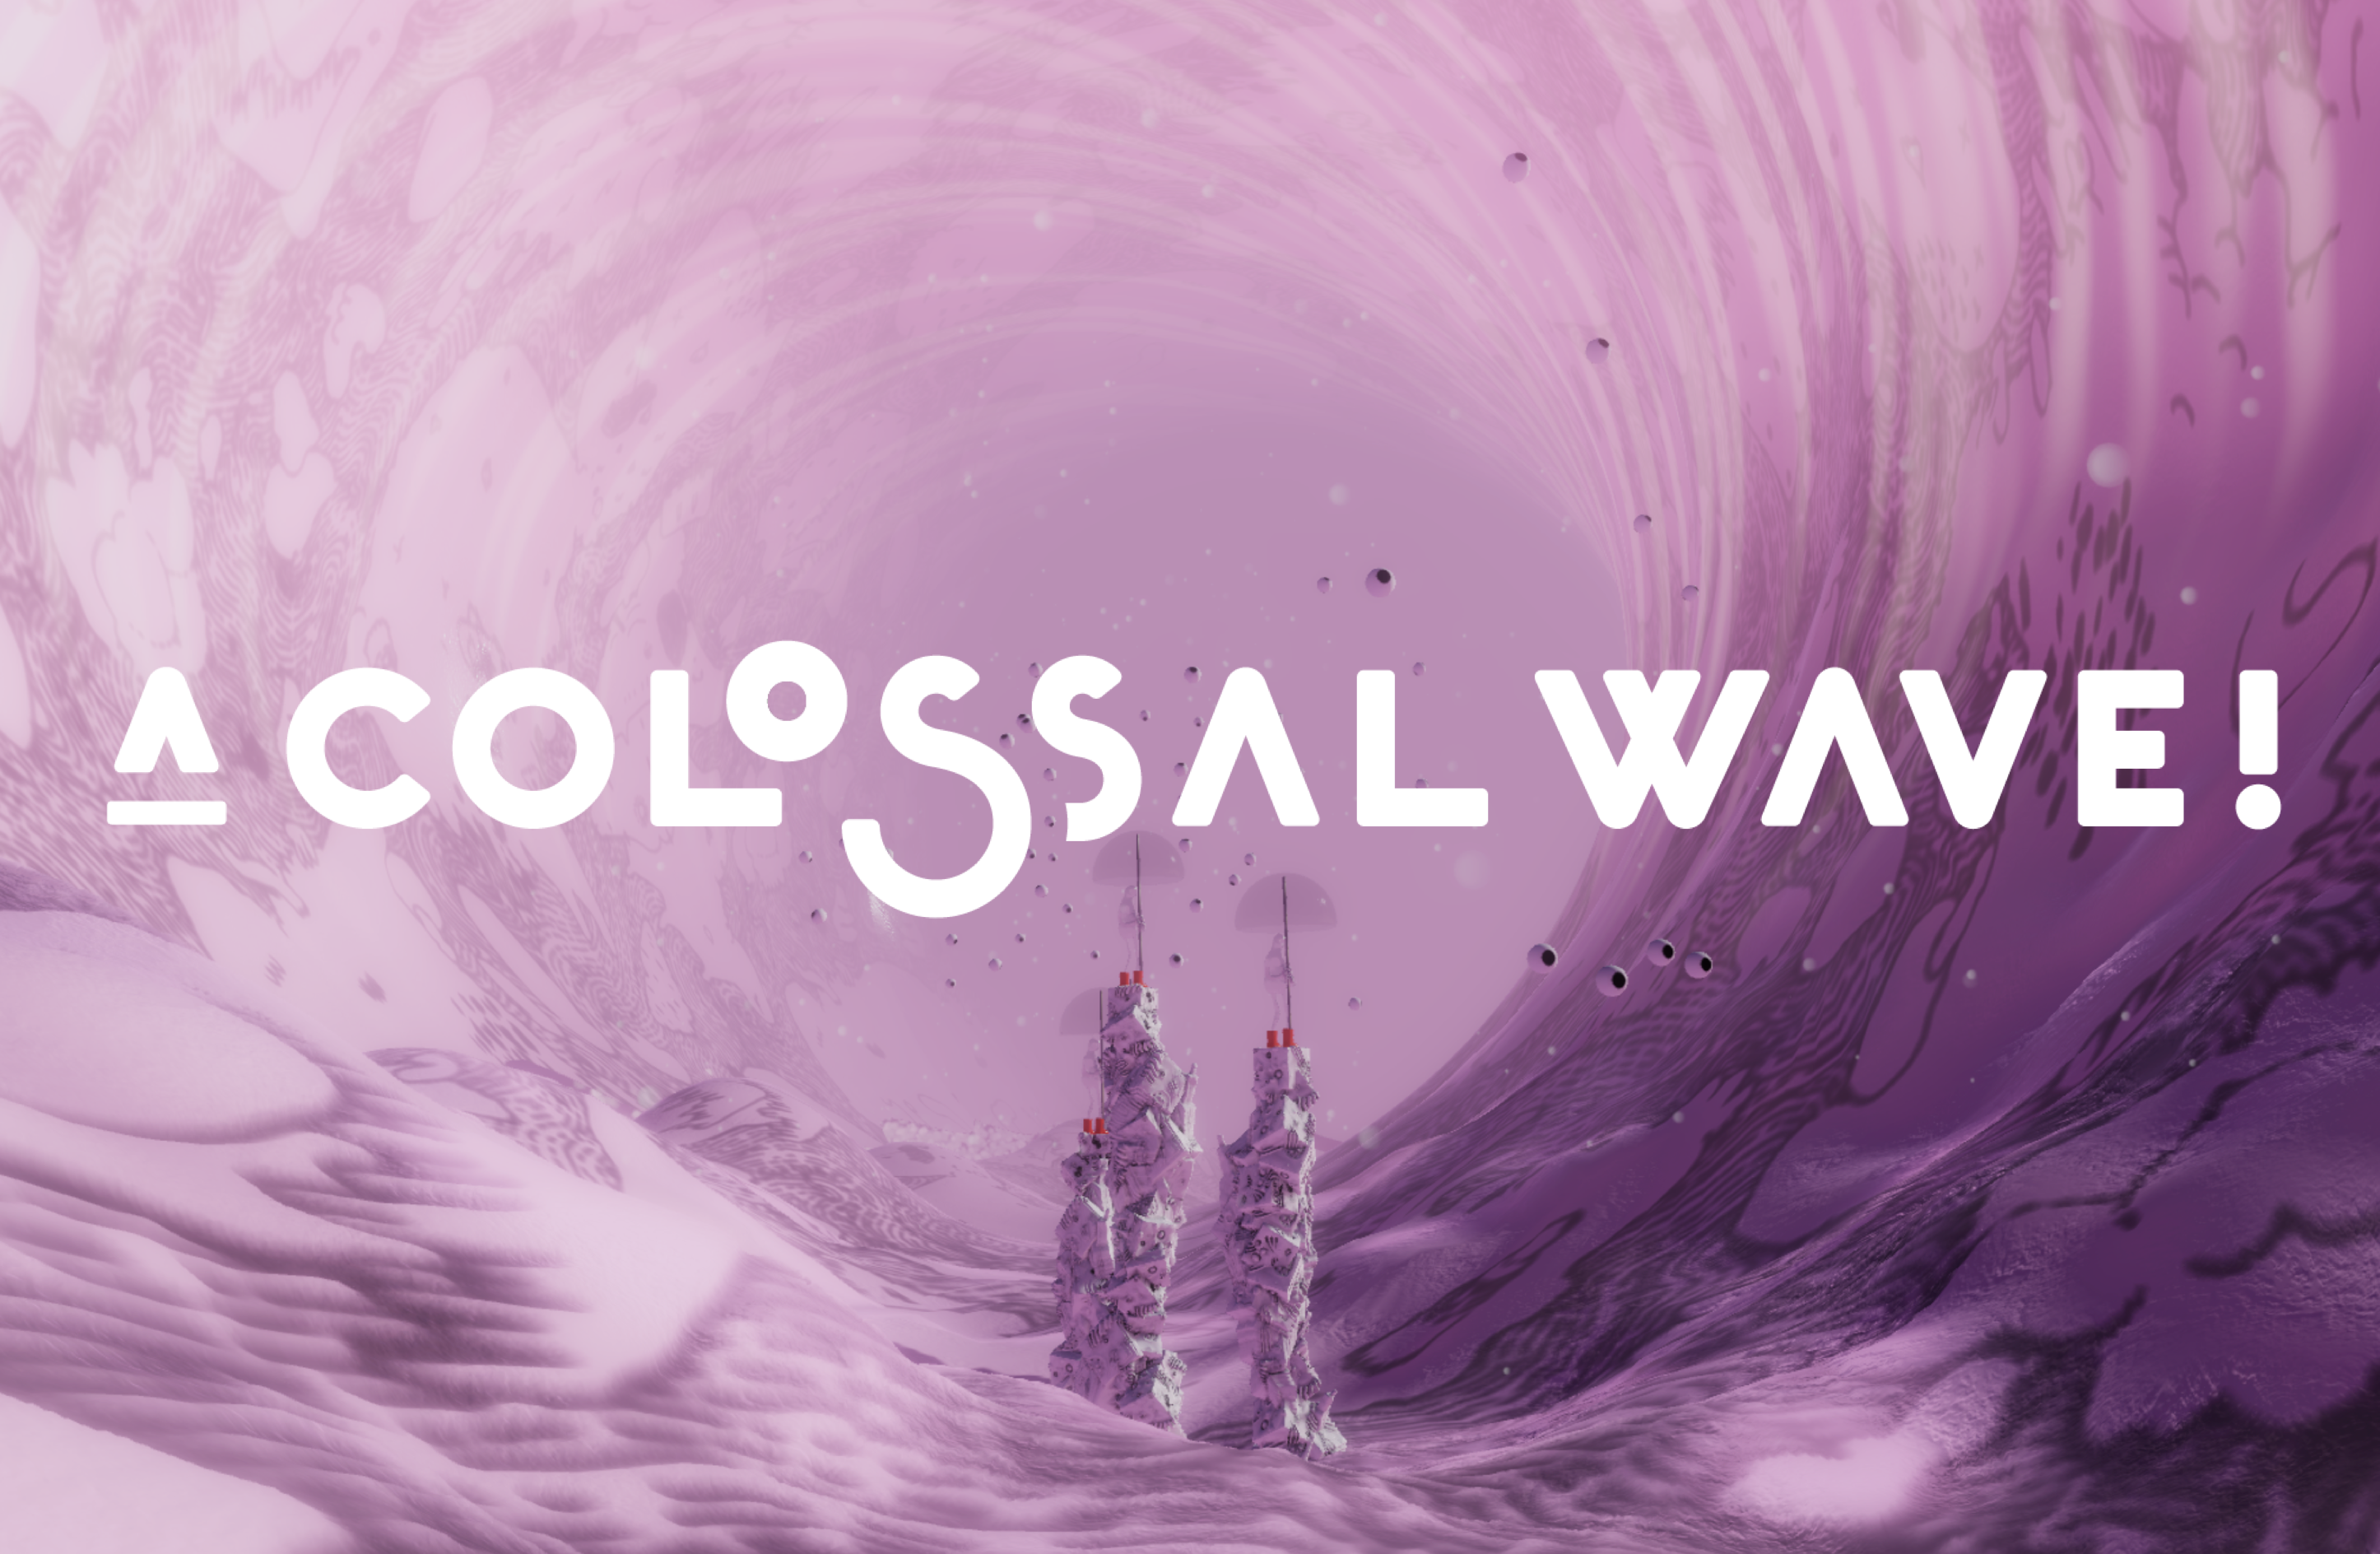 A Colossal Wave!